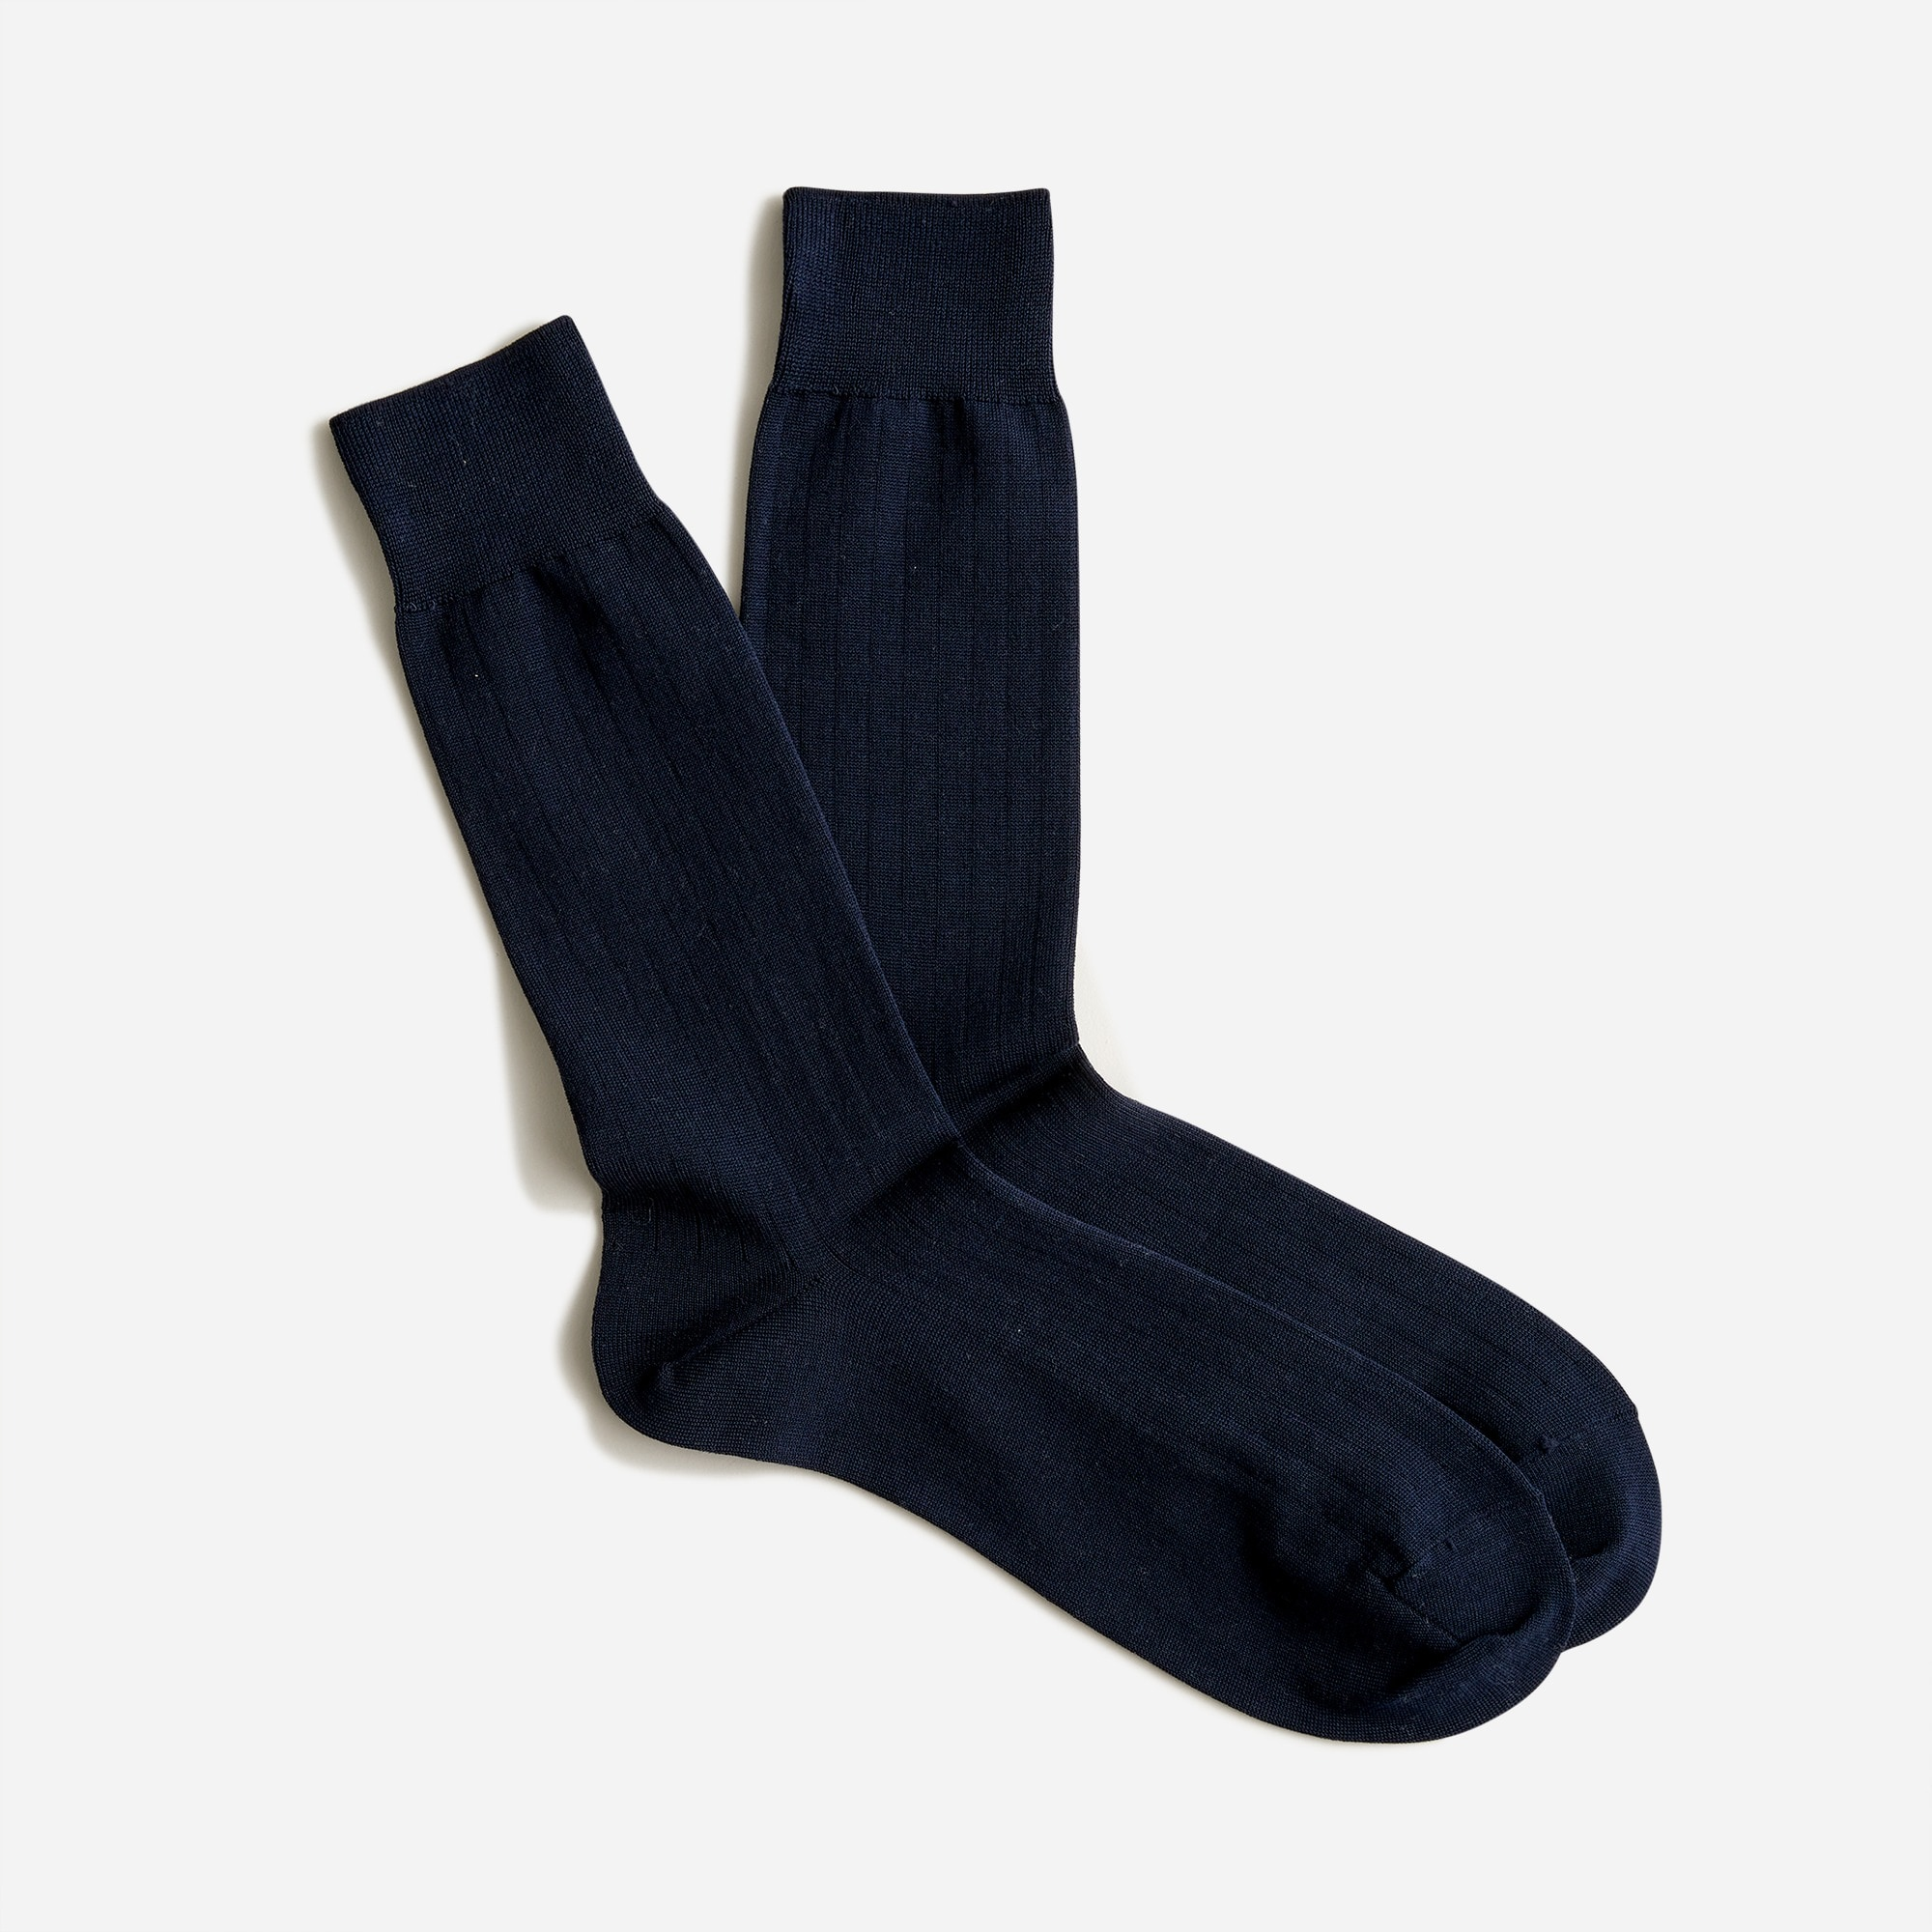 mens Ribbed dress socks